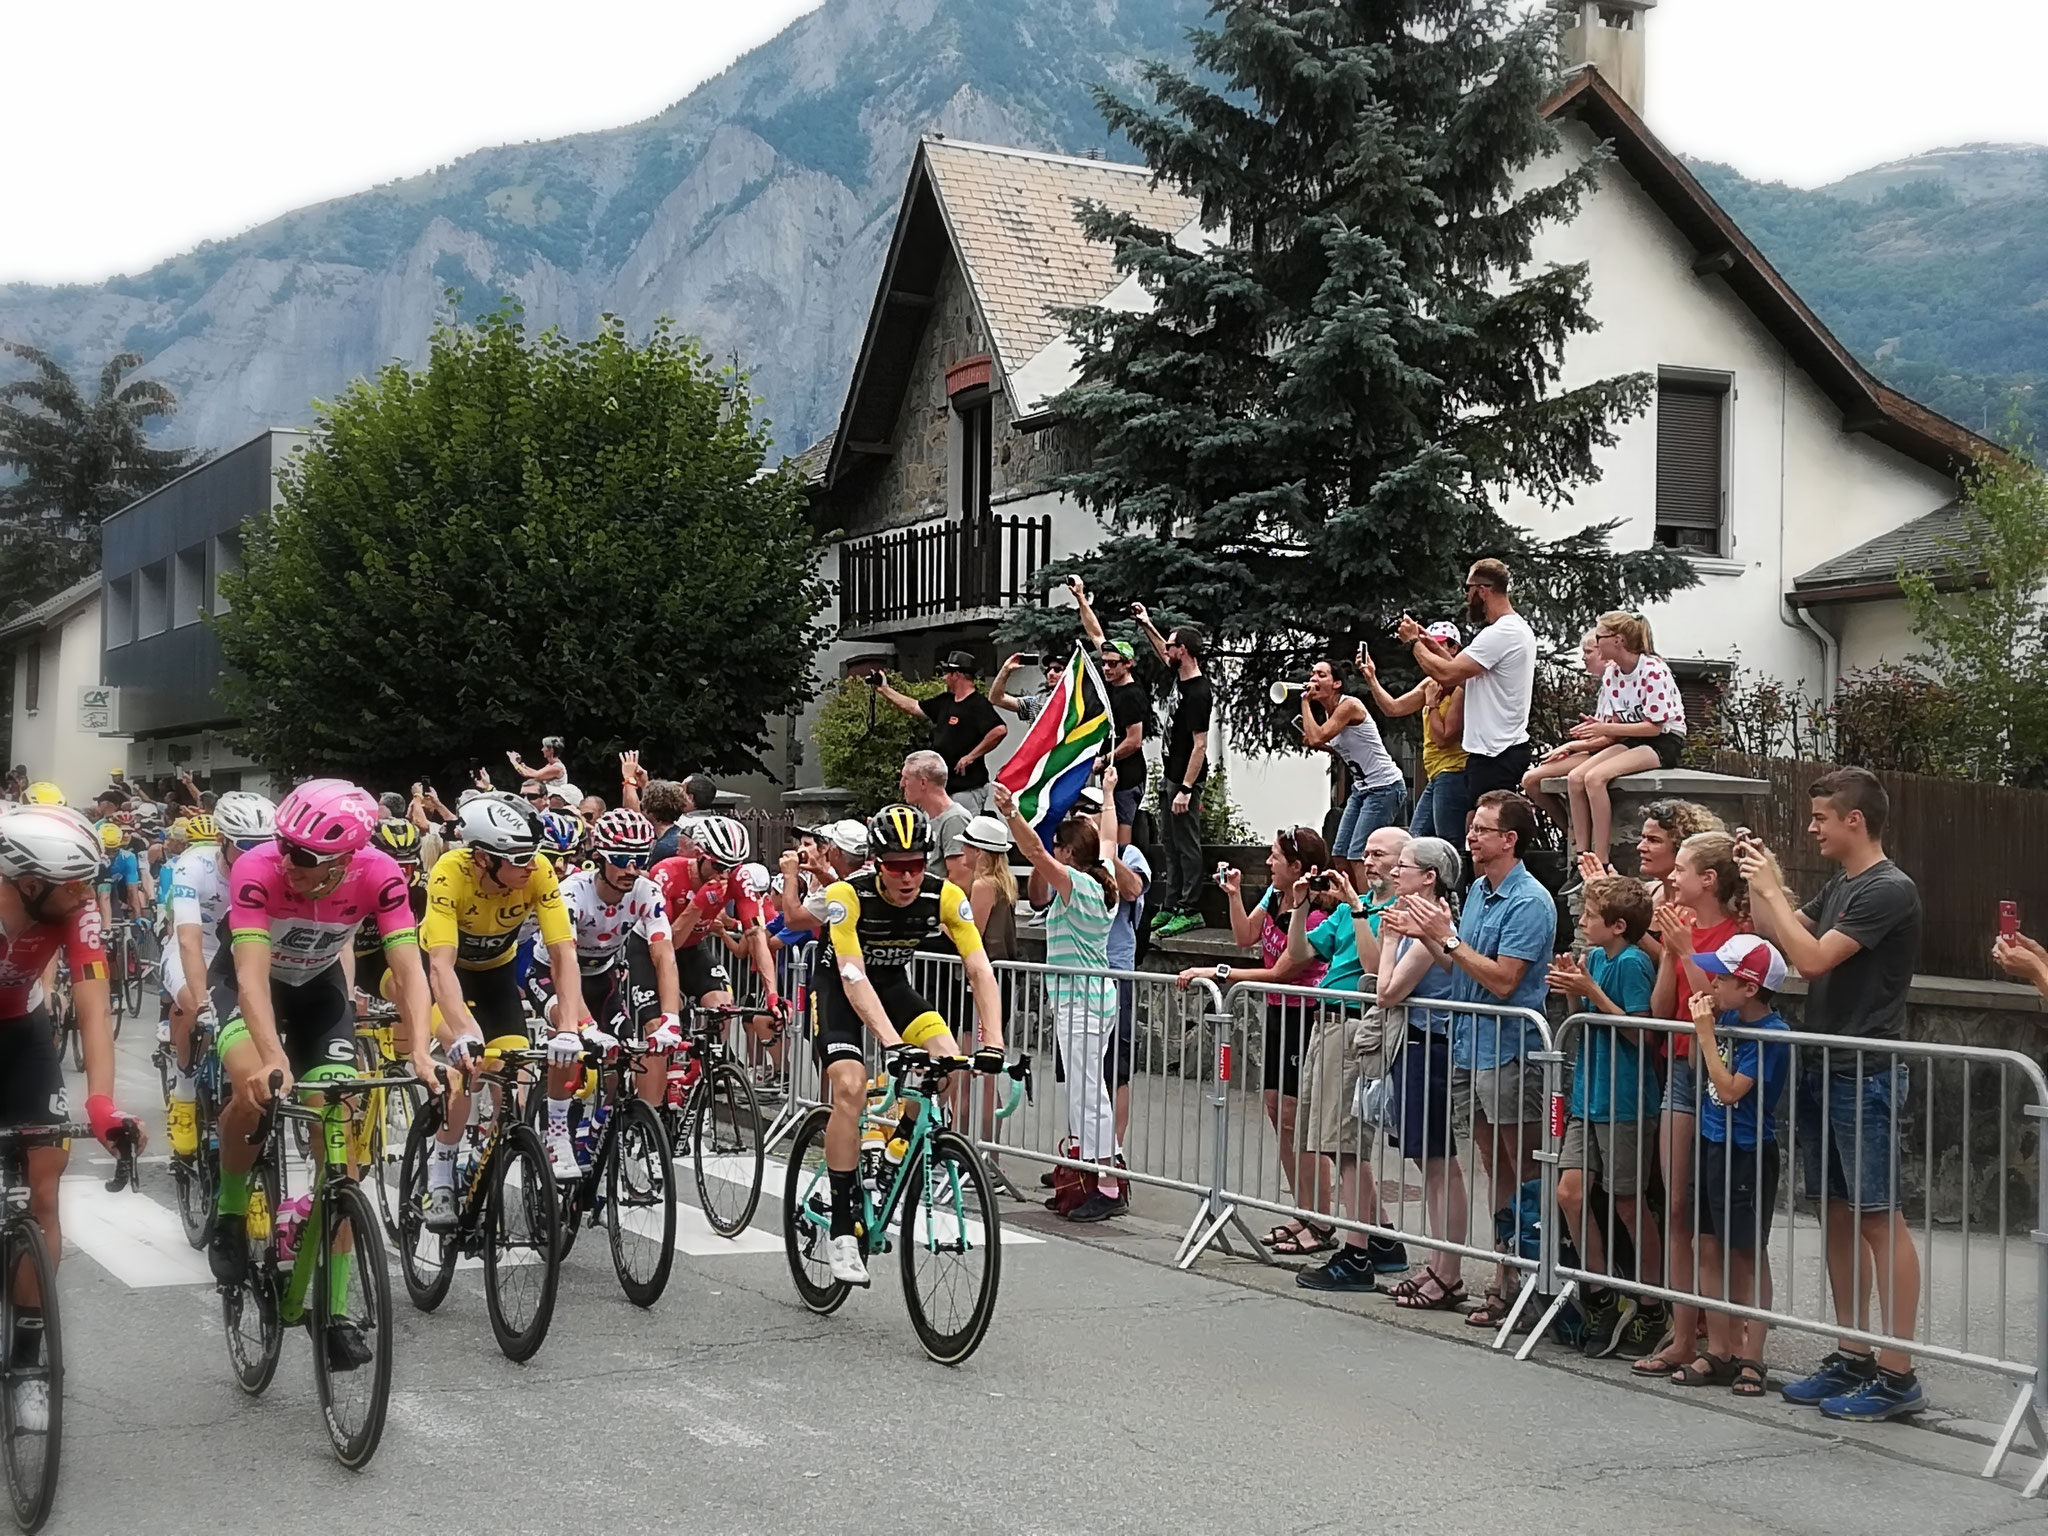 Watch le tour de France from your private terrace or get crazy with the croud